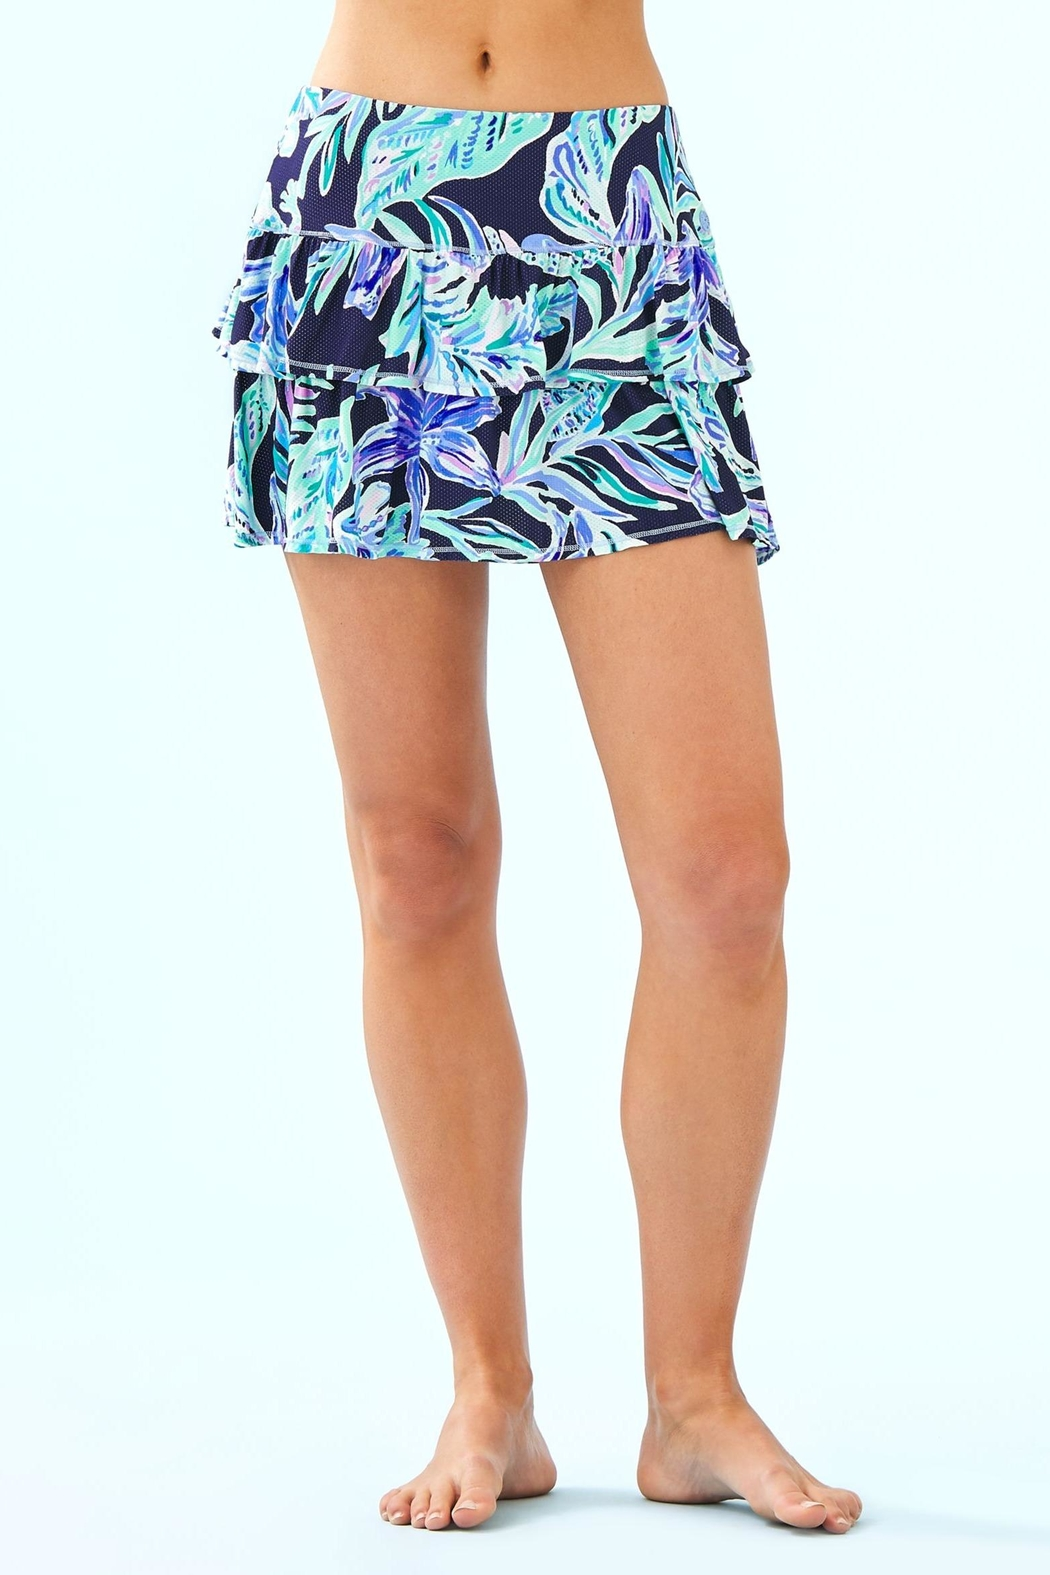 Lilly Pulitzer Luxletic Althea Active-Skort - Main Image